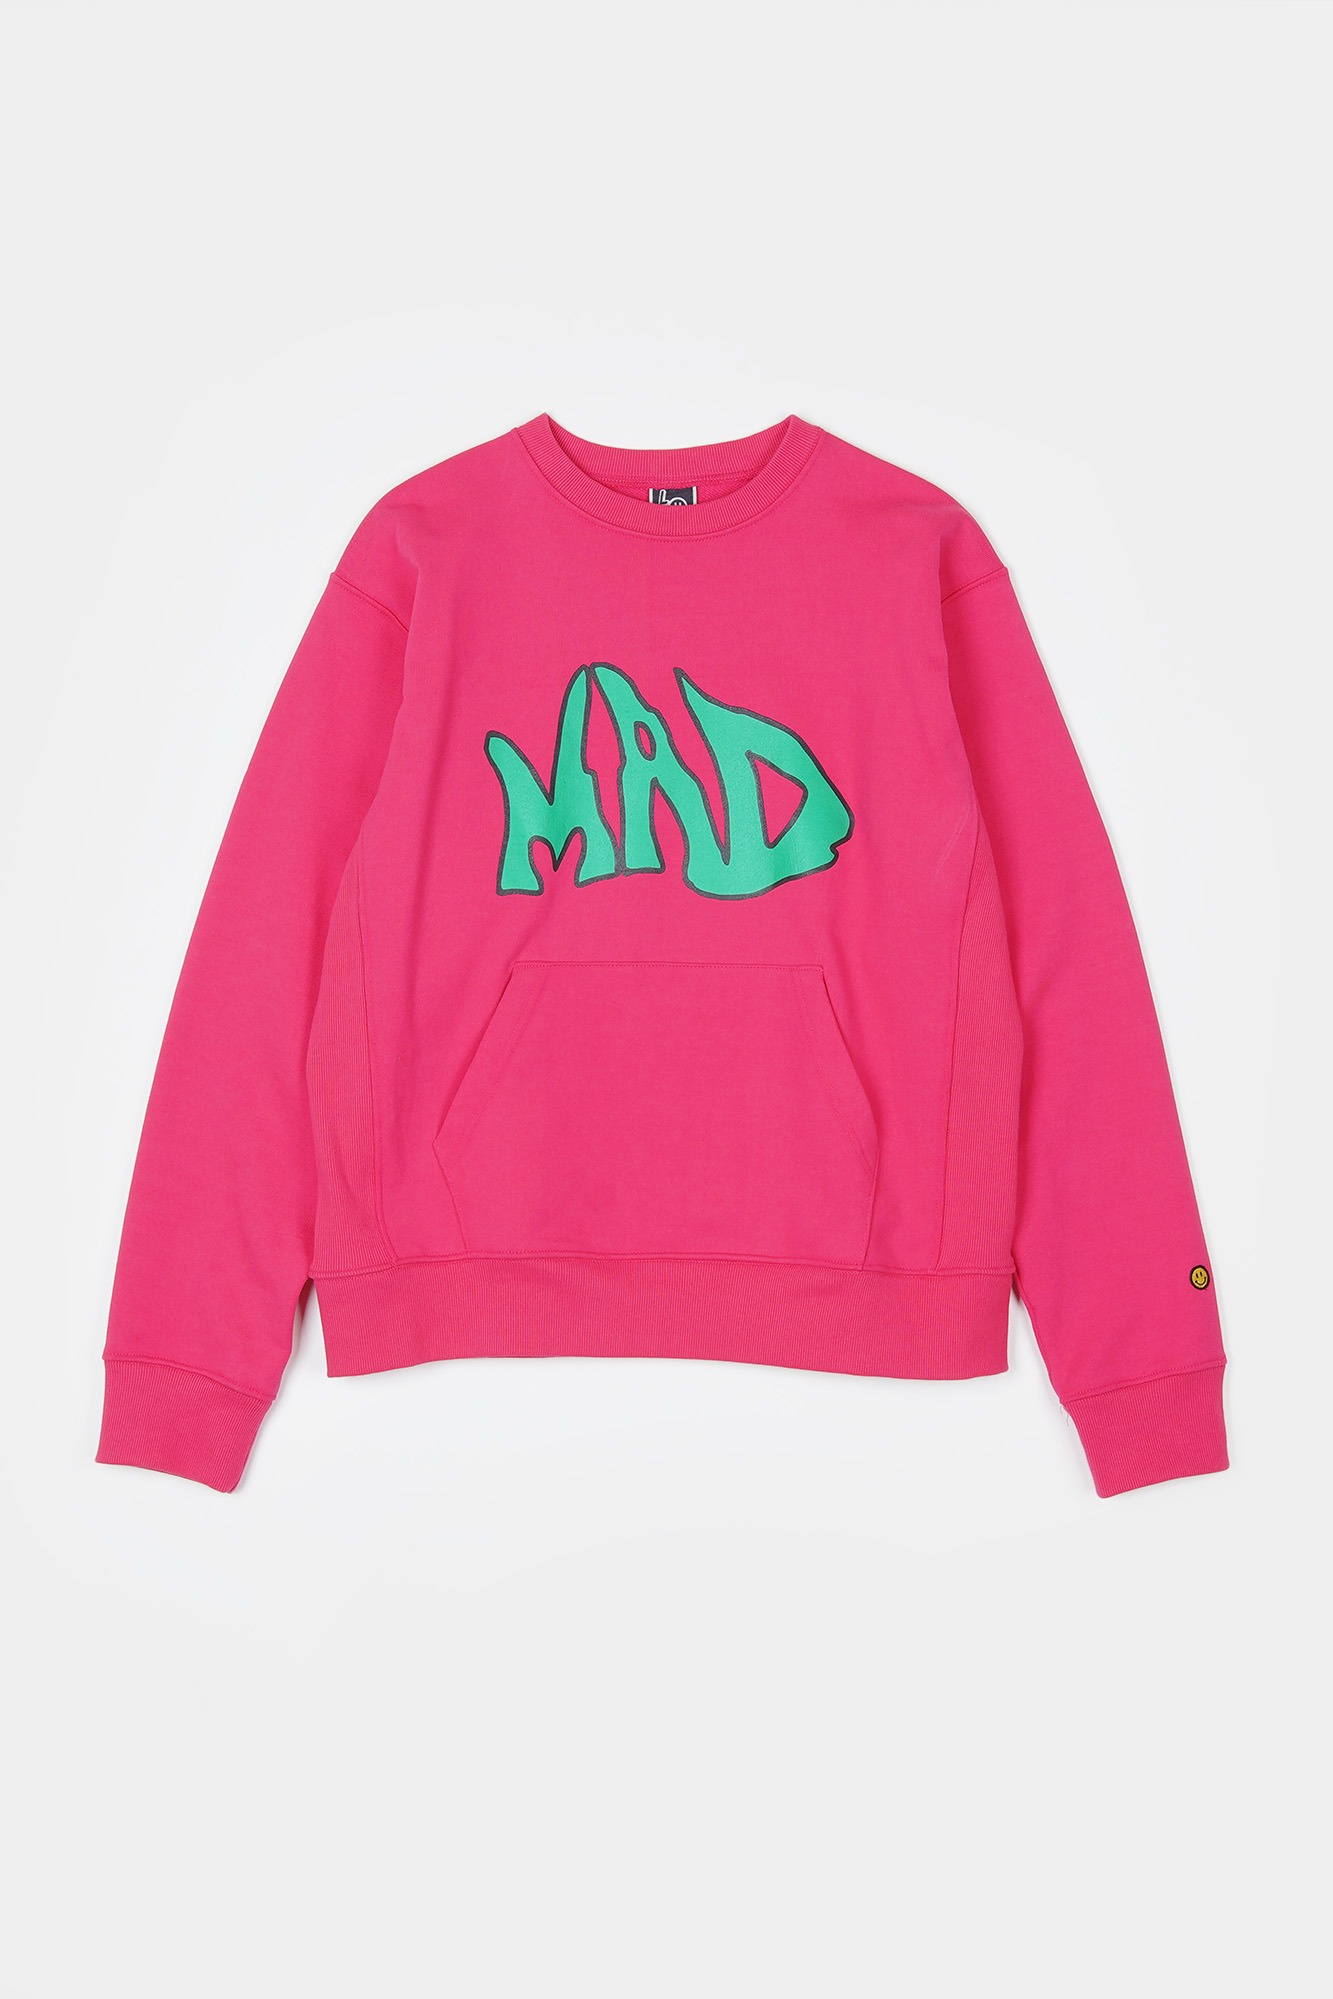 "LOCALS ONLY MAD Pocket Sweat Shirts ""Pink"""